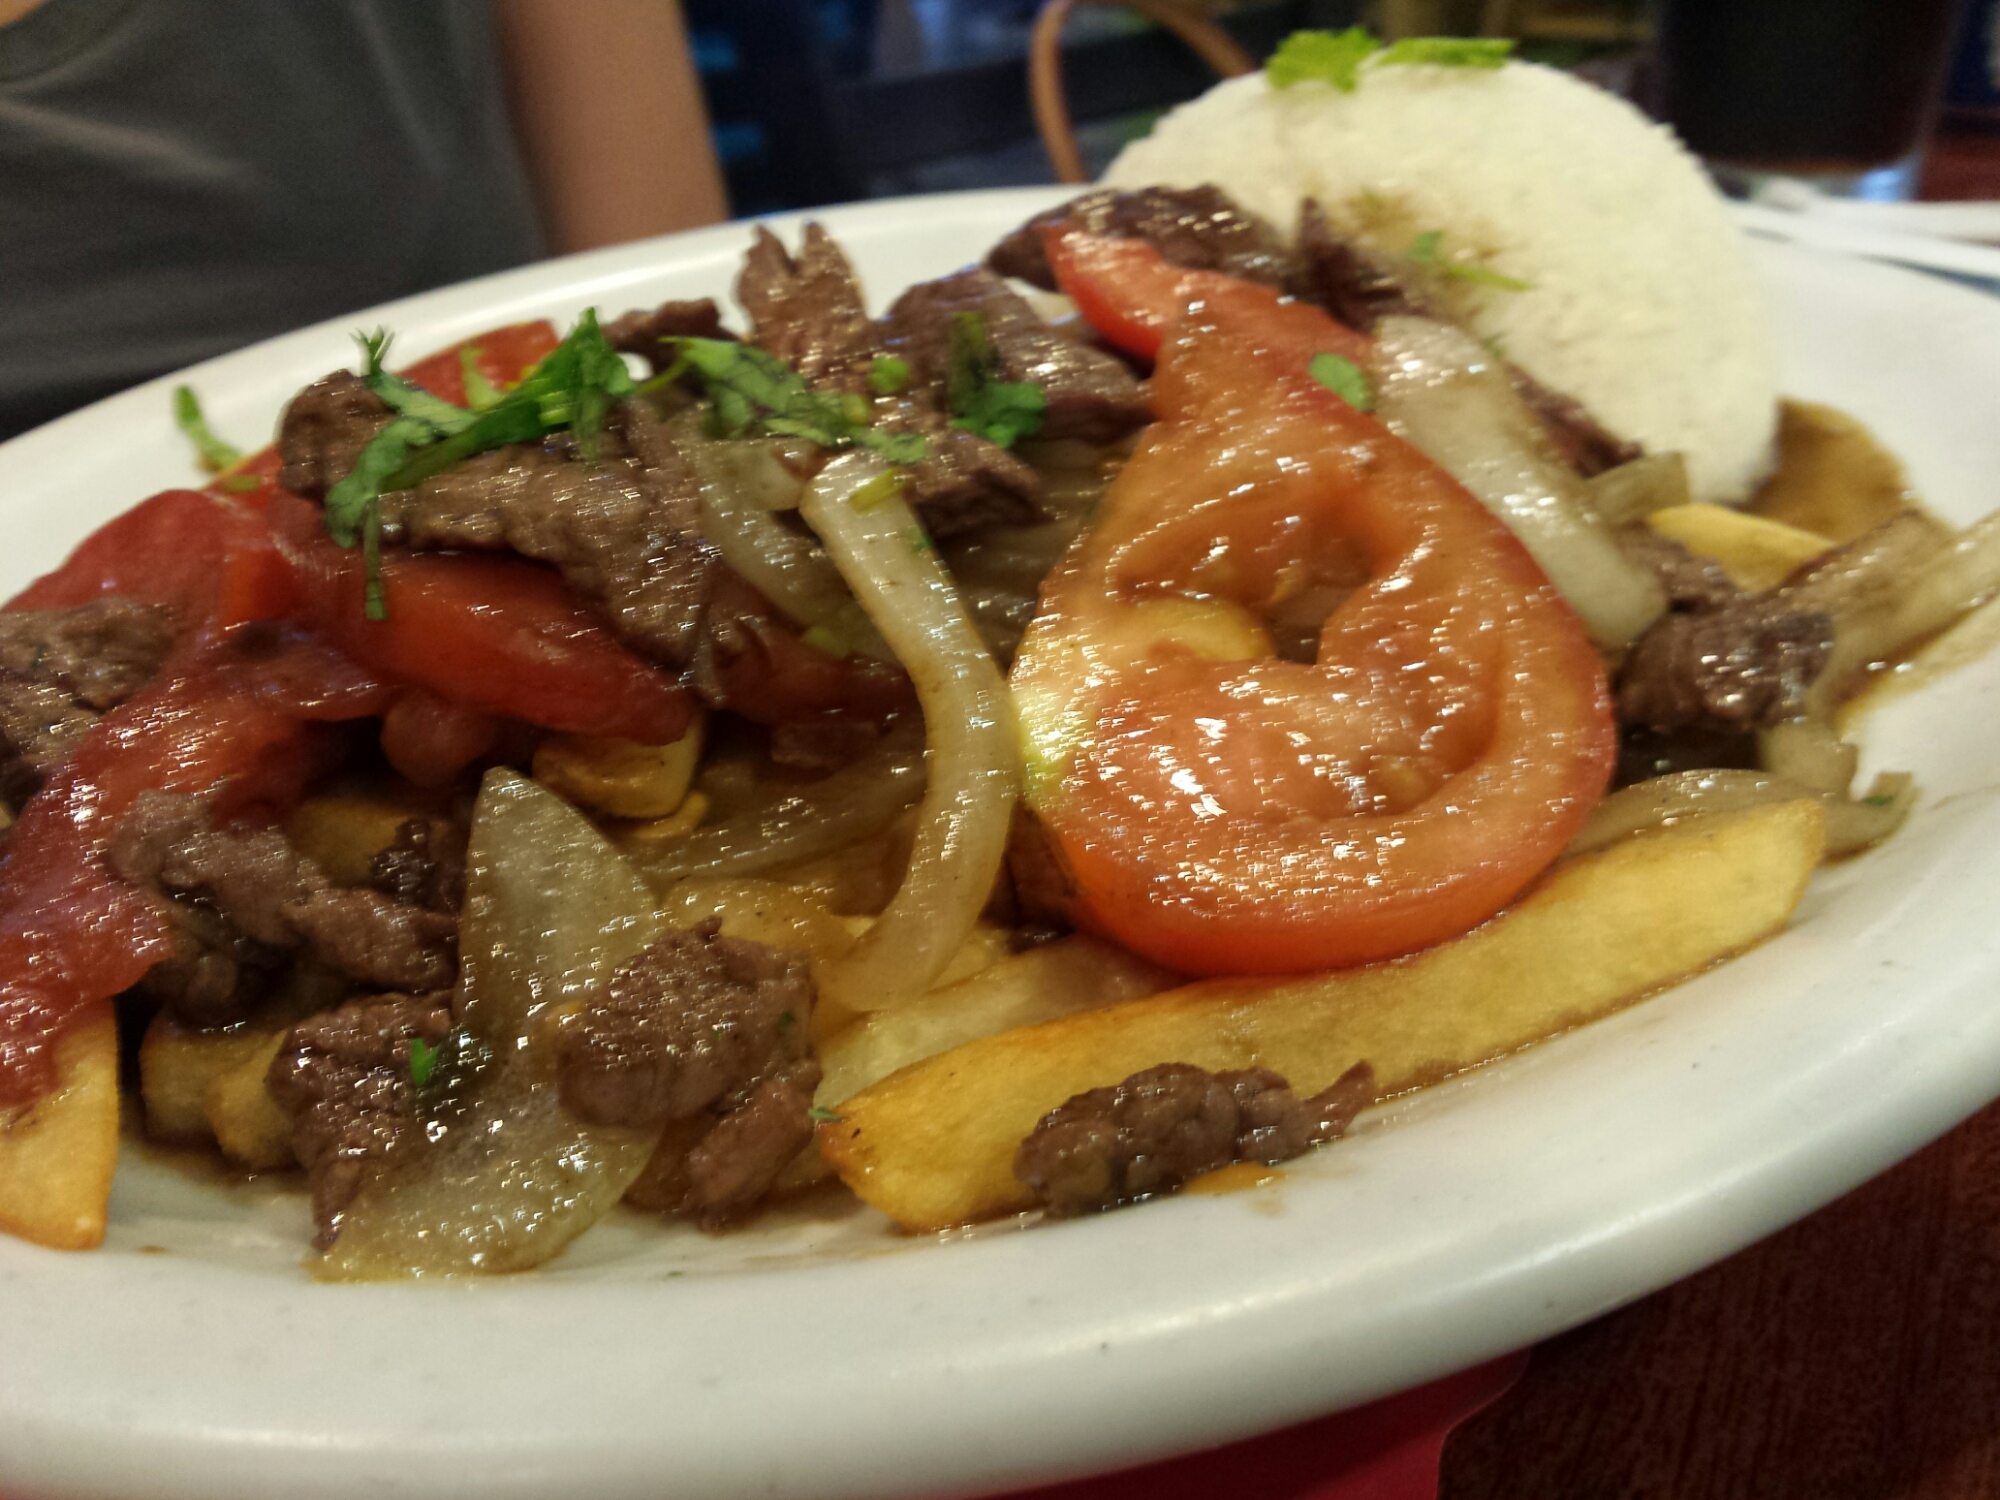 Lomo Saltado - Top sirloin strips sauteed with onions tomatoes, french fries and rice